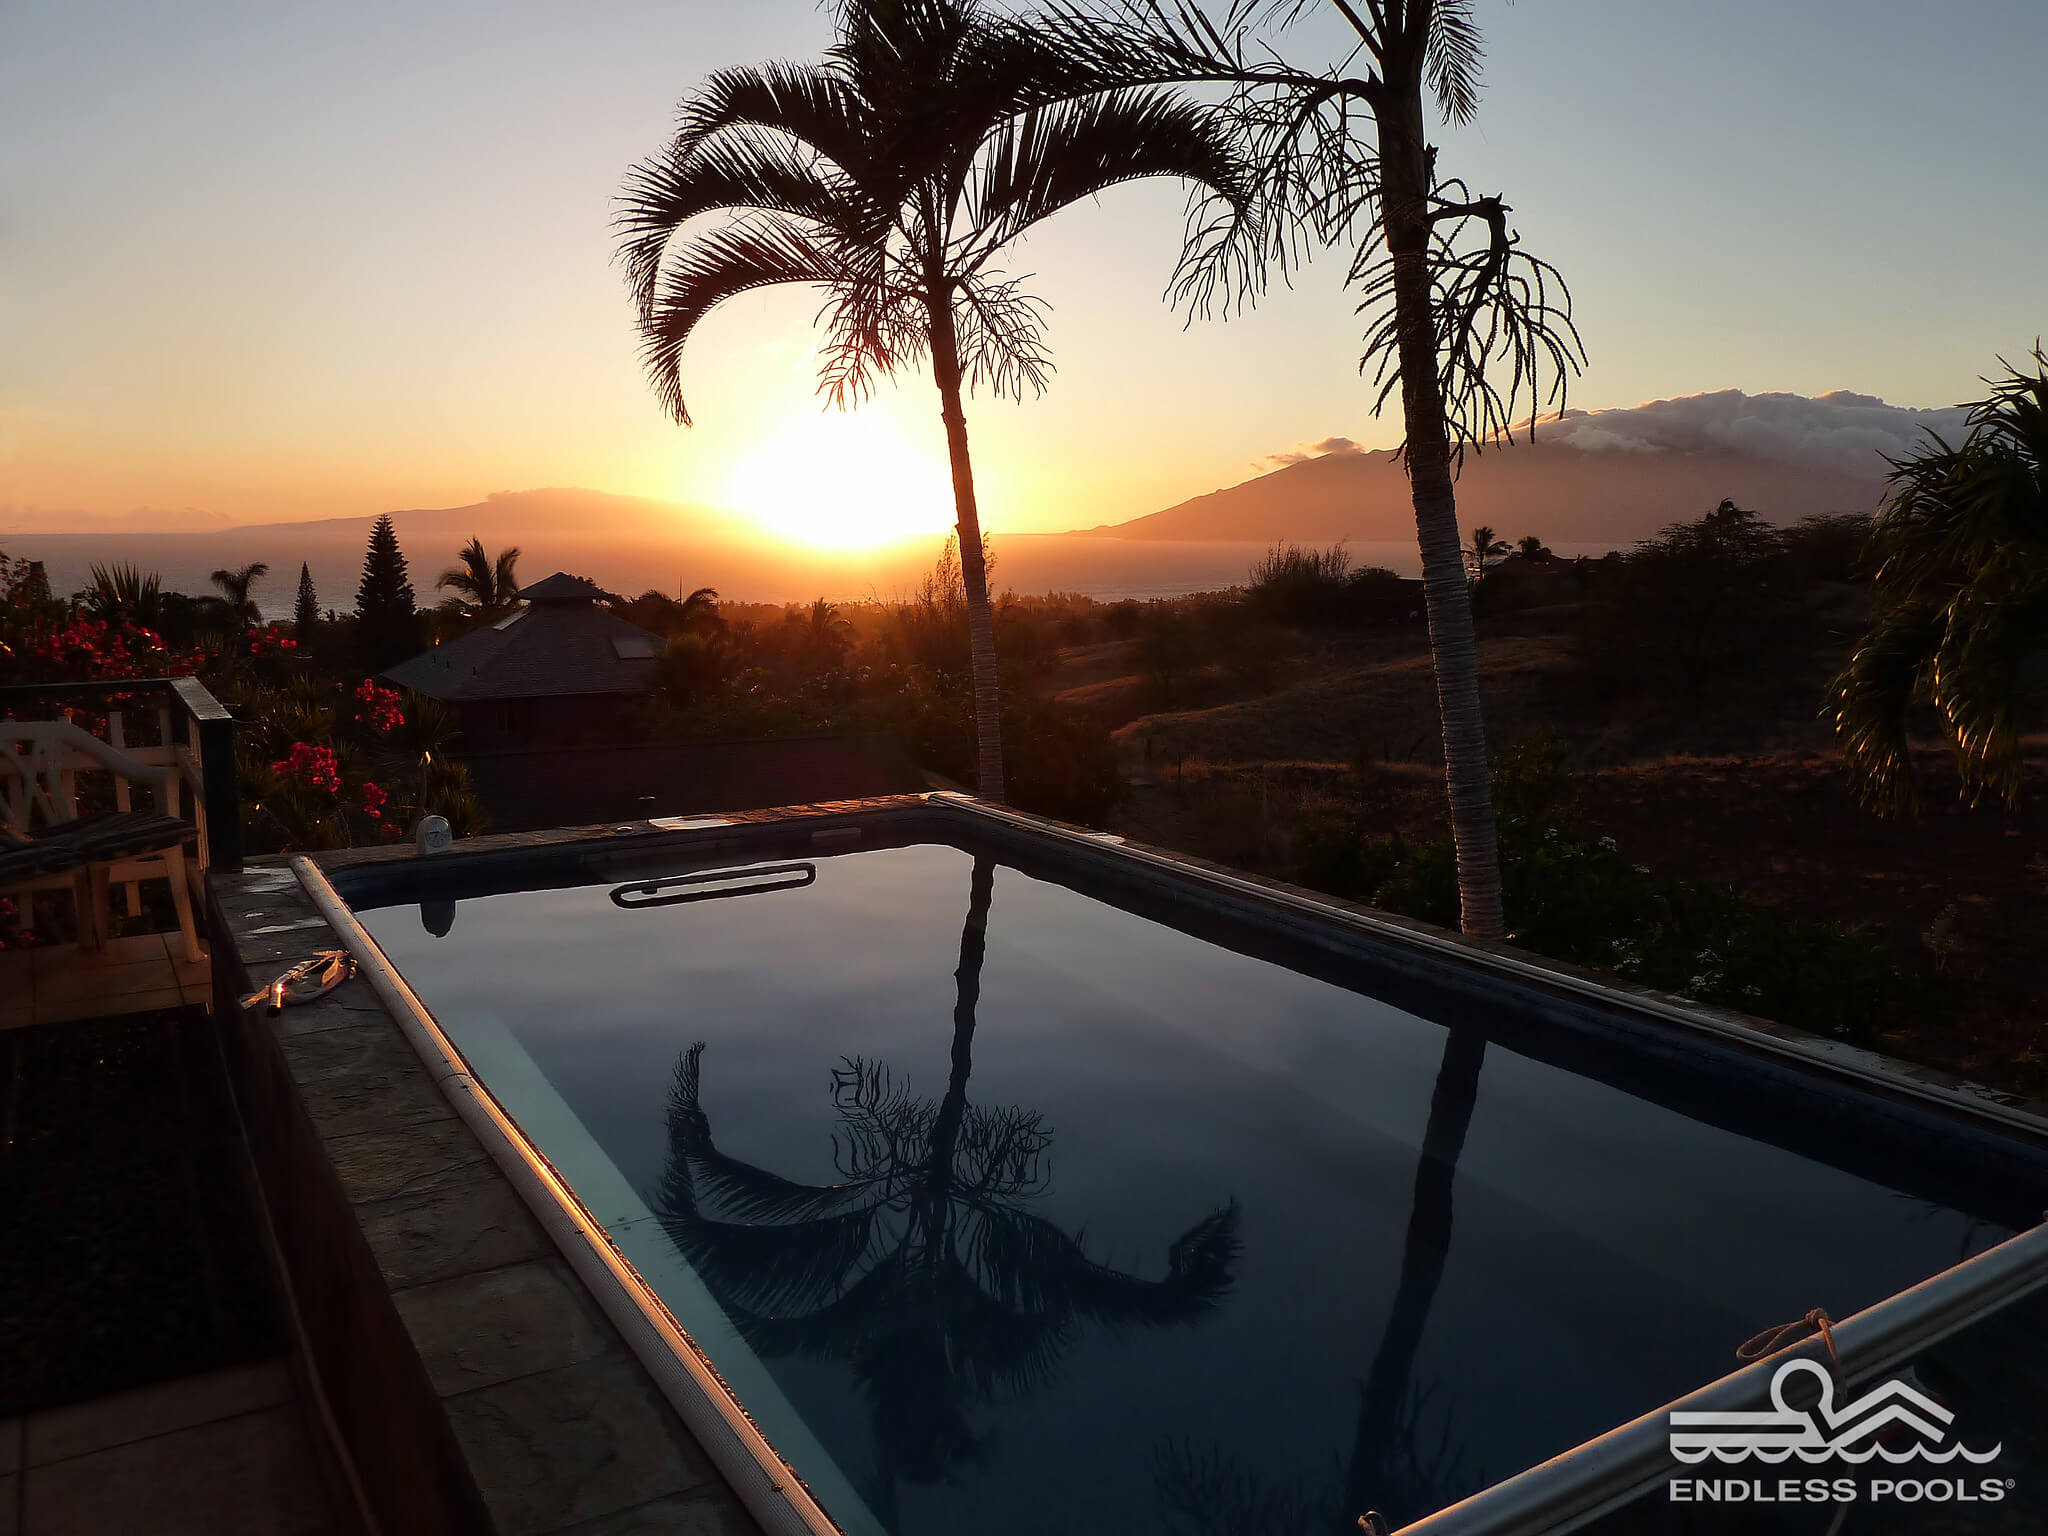 Original Endless Pool at sunset in Hawaii